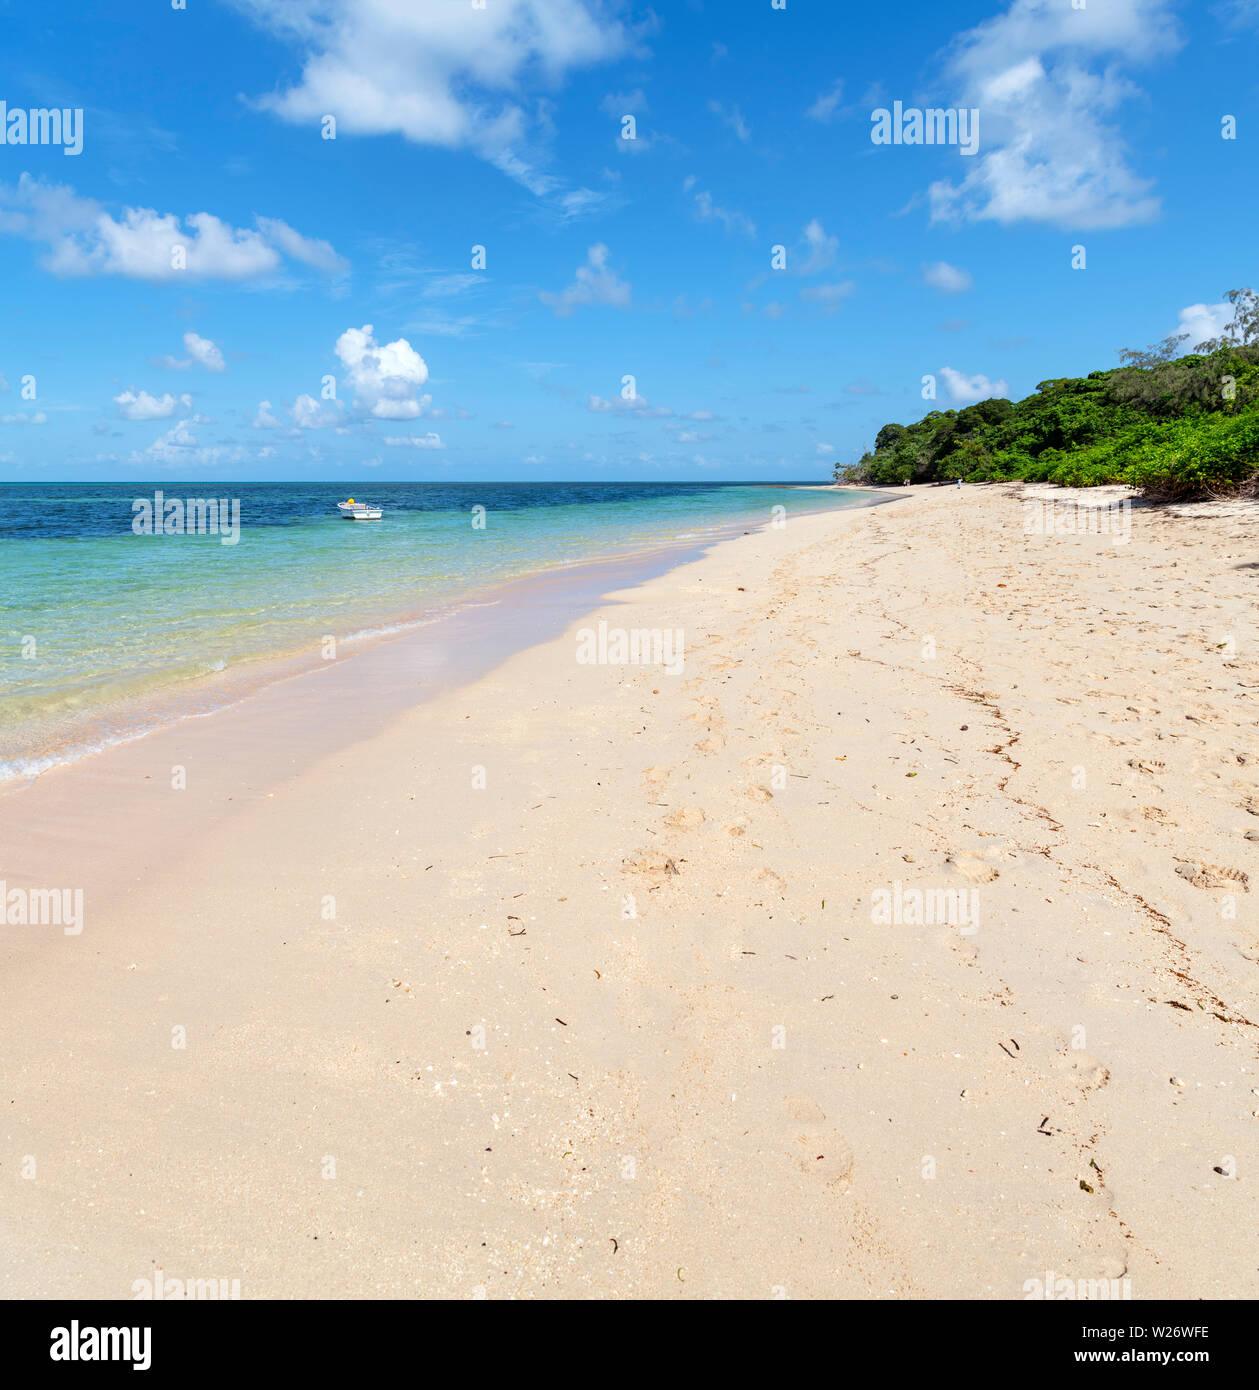 Beach on Green Island, a coral cay in the Great Barrier Reef Marine Park, Queensland, Australia Stock Photo